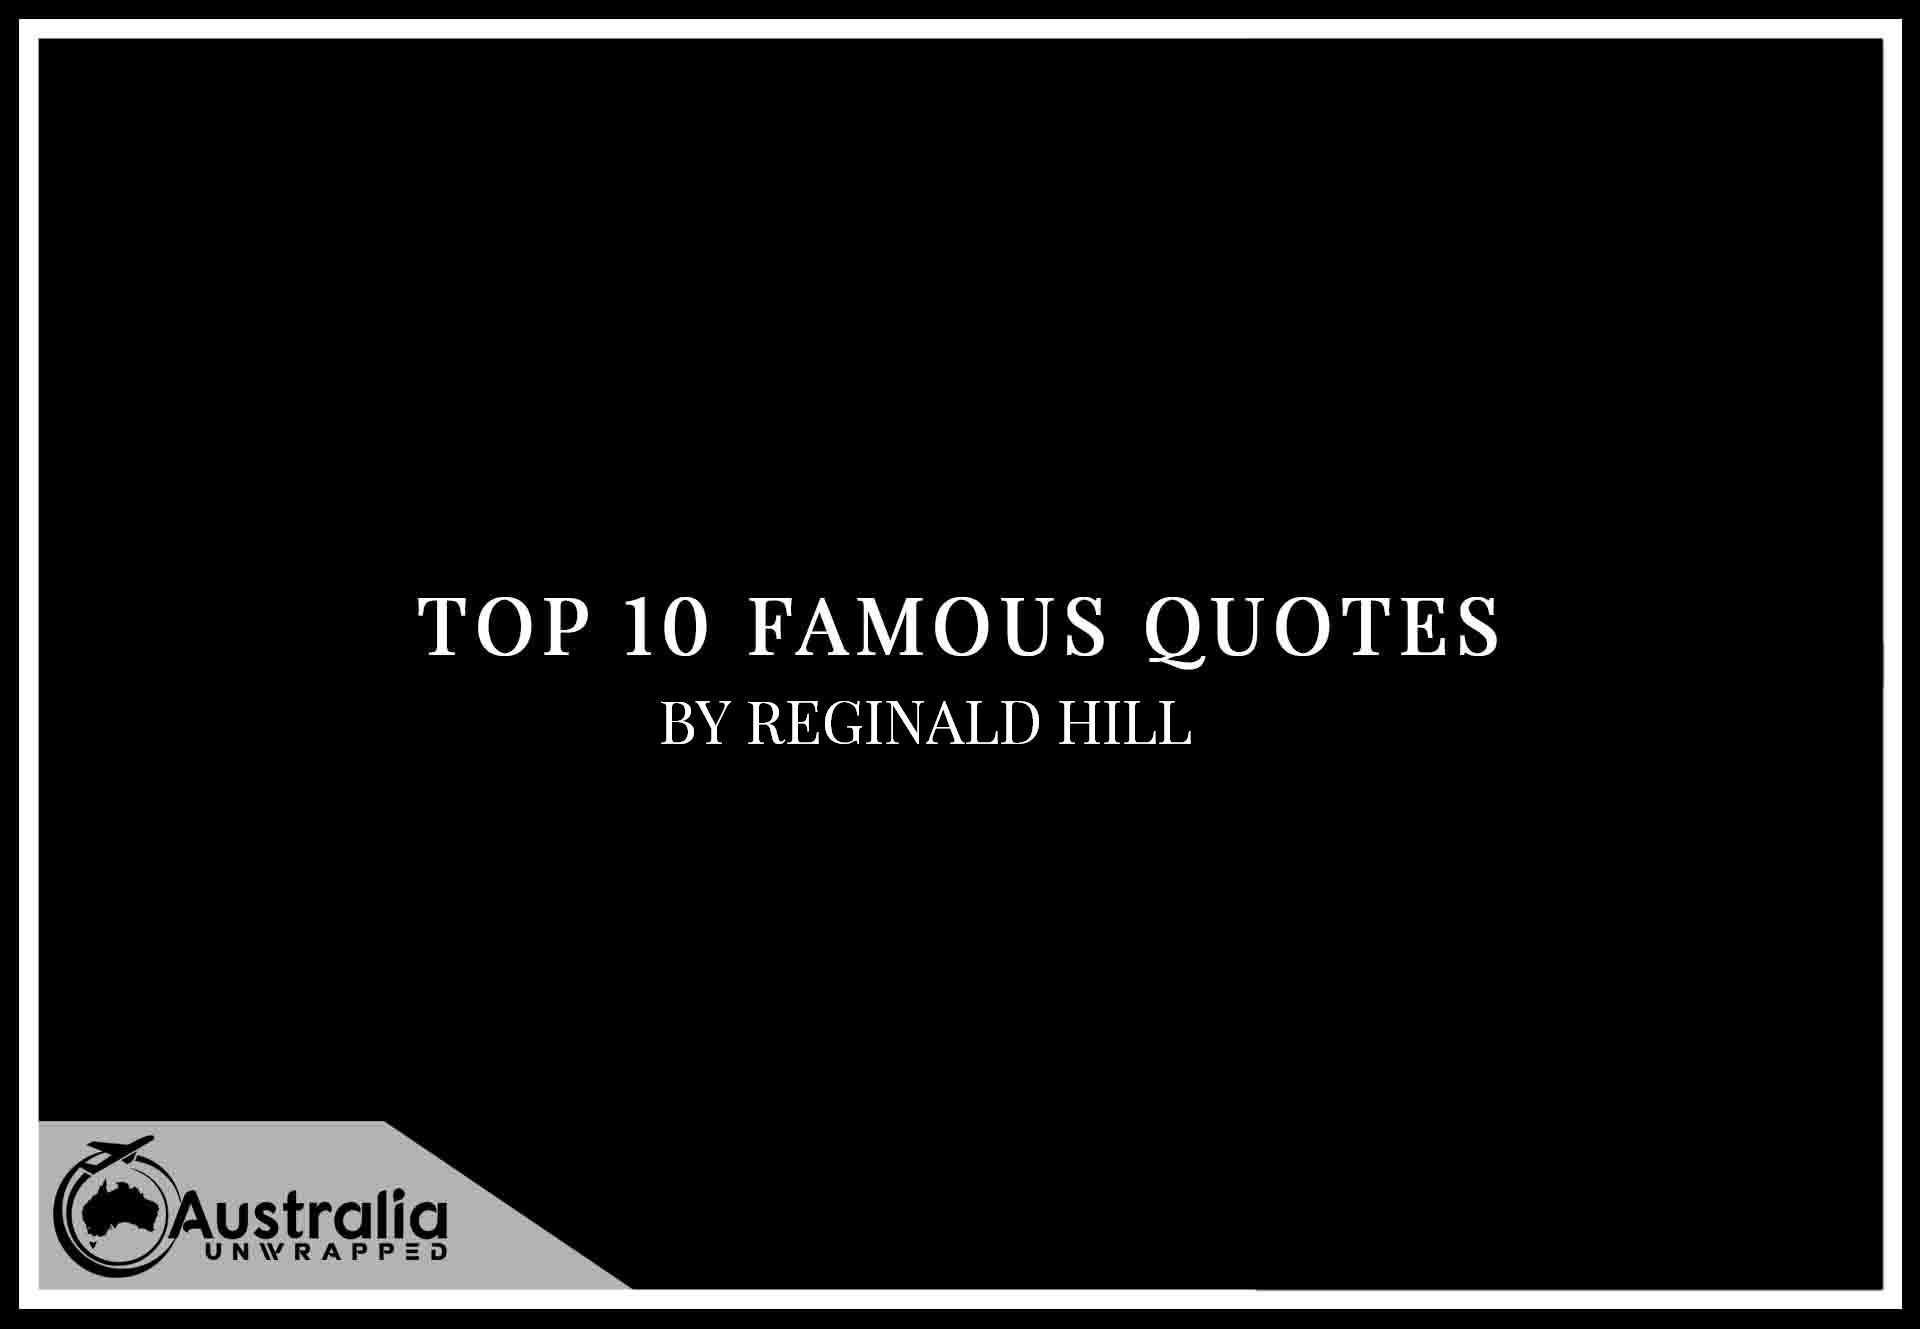 Top 10 Famous Quotes by Author Reginald Hill